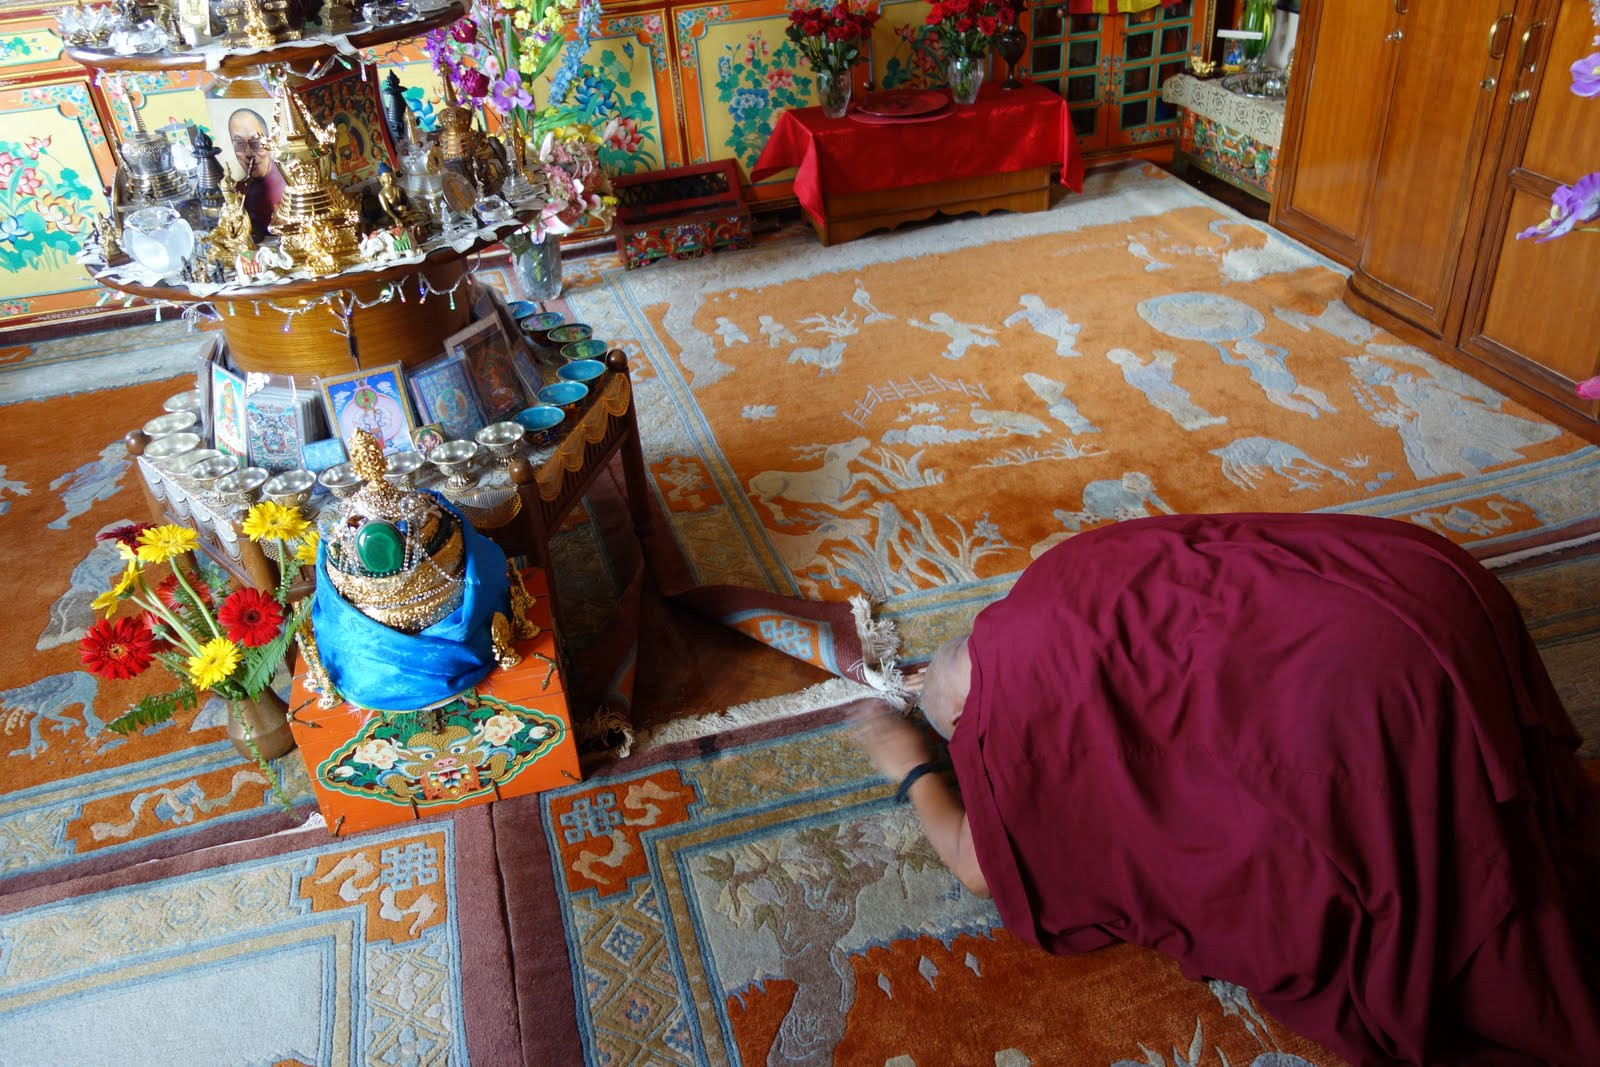 First thing in the morning, Rinpoche is doing prostrations to the altar in his room. There is one altar that has many holy relics on it and Rinpoche circumambulates it every day. Rinpoche is making a very quick stop here on the way to Mongolia. Aug 10, 2013.